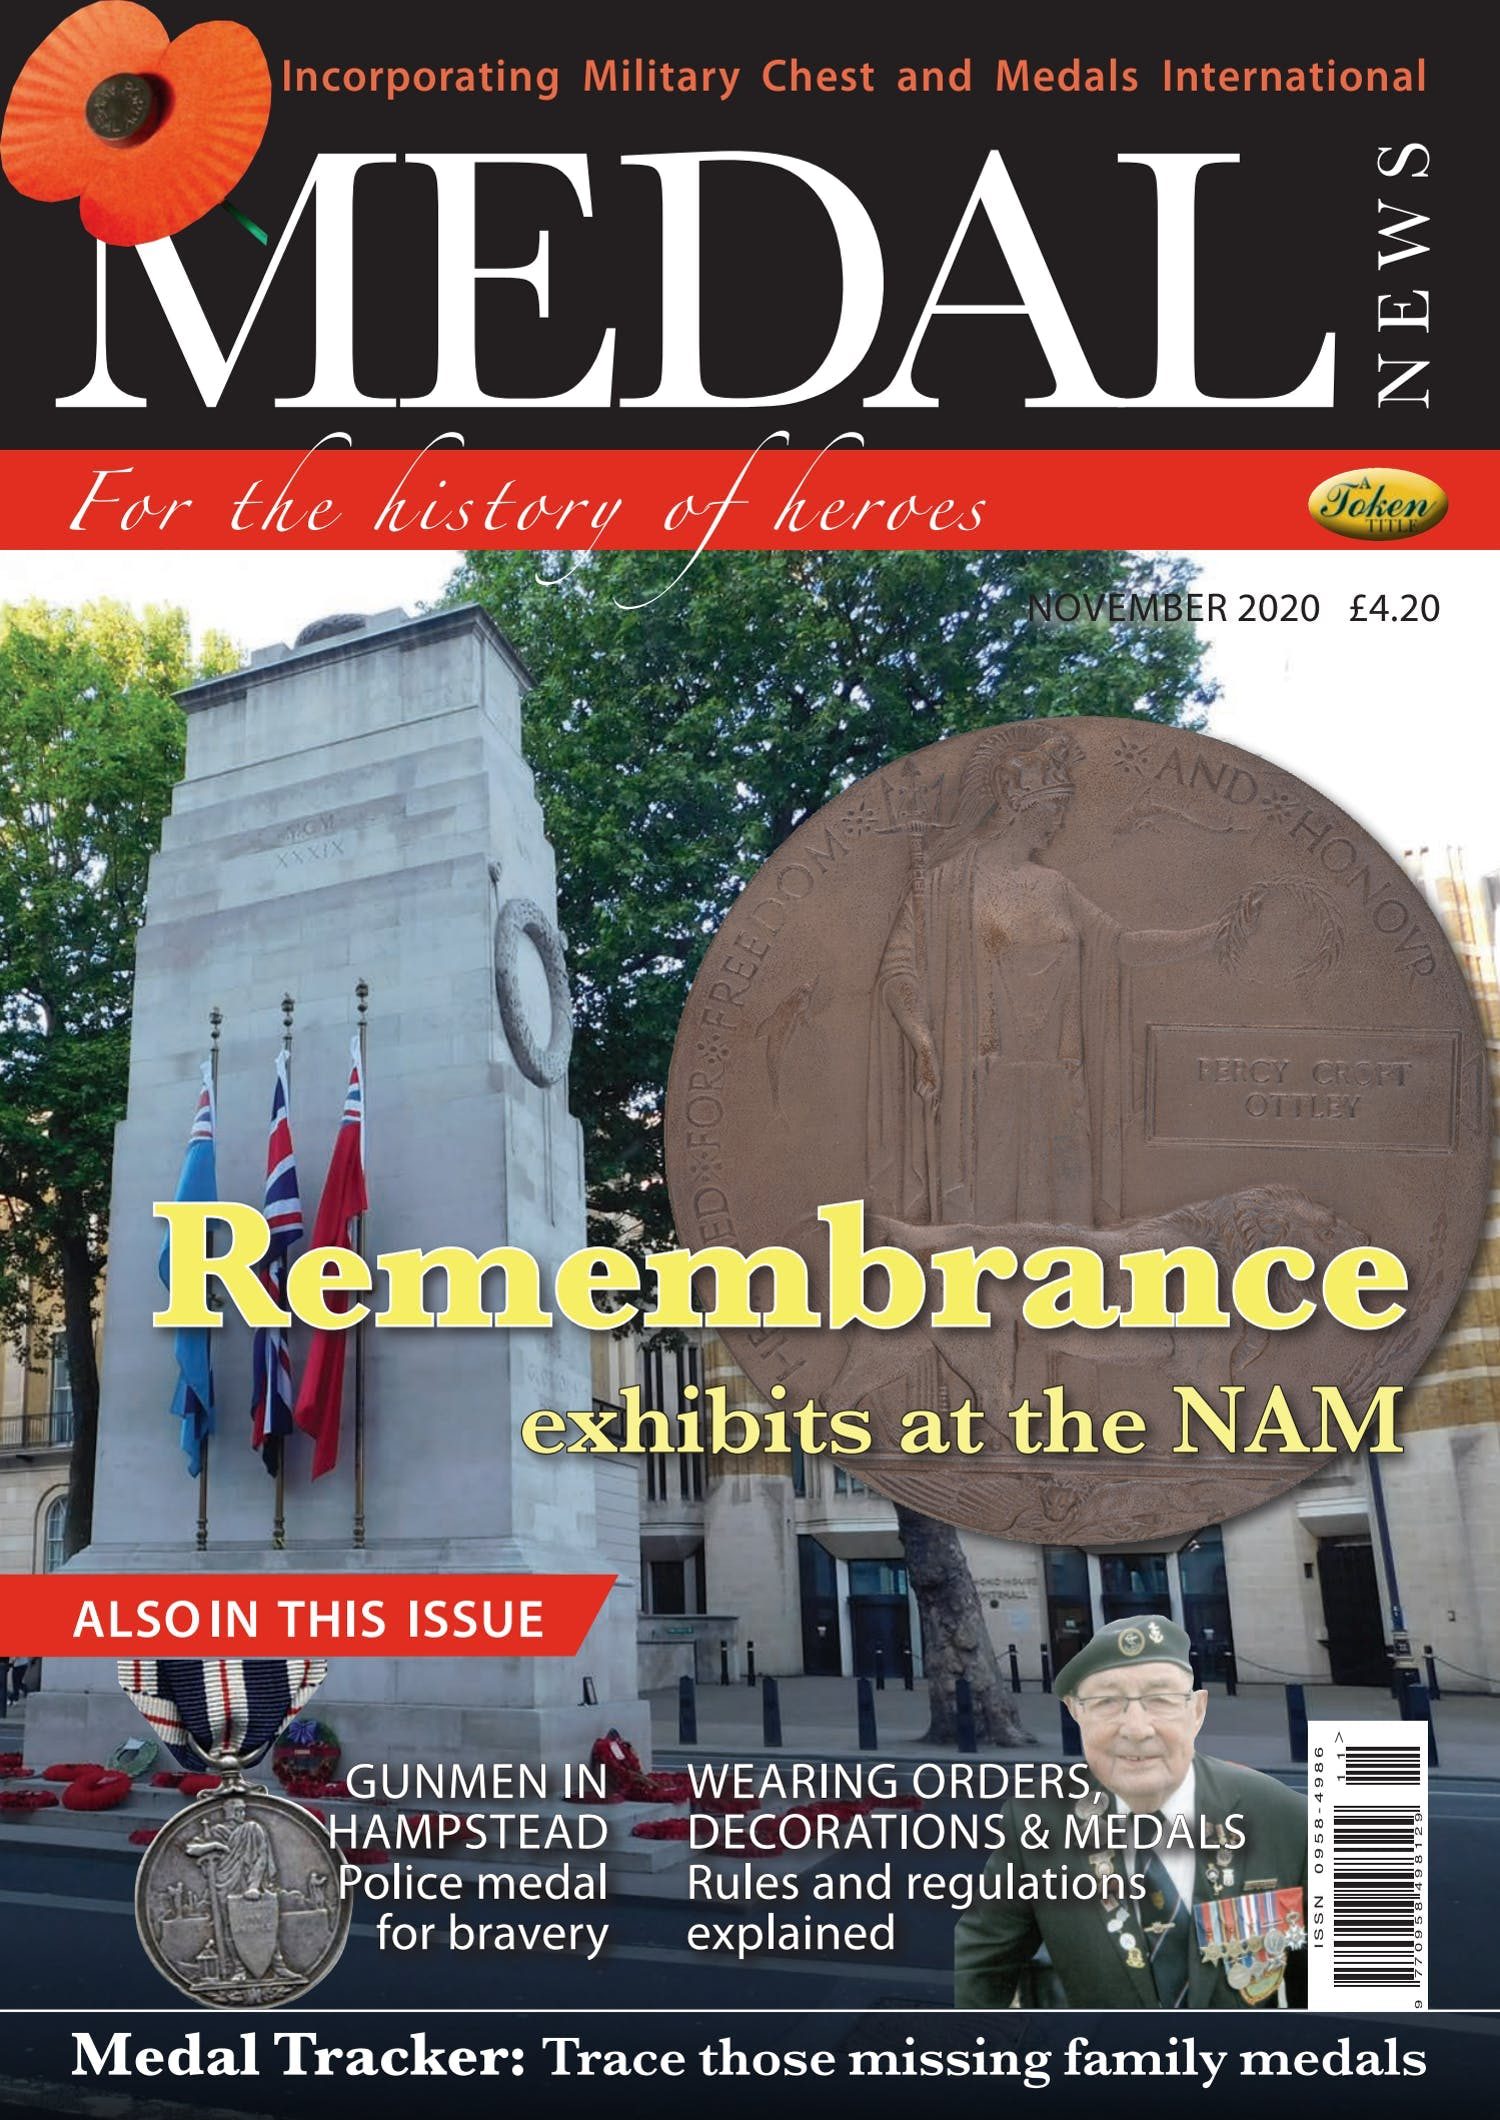 The front cover of Medal News, November 2020 - Volume 58, Number 10